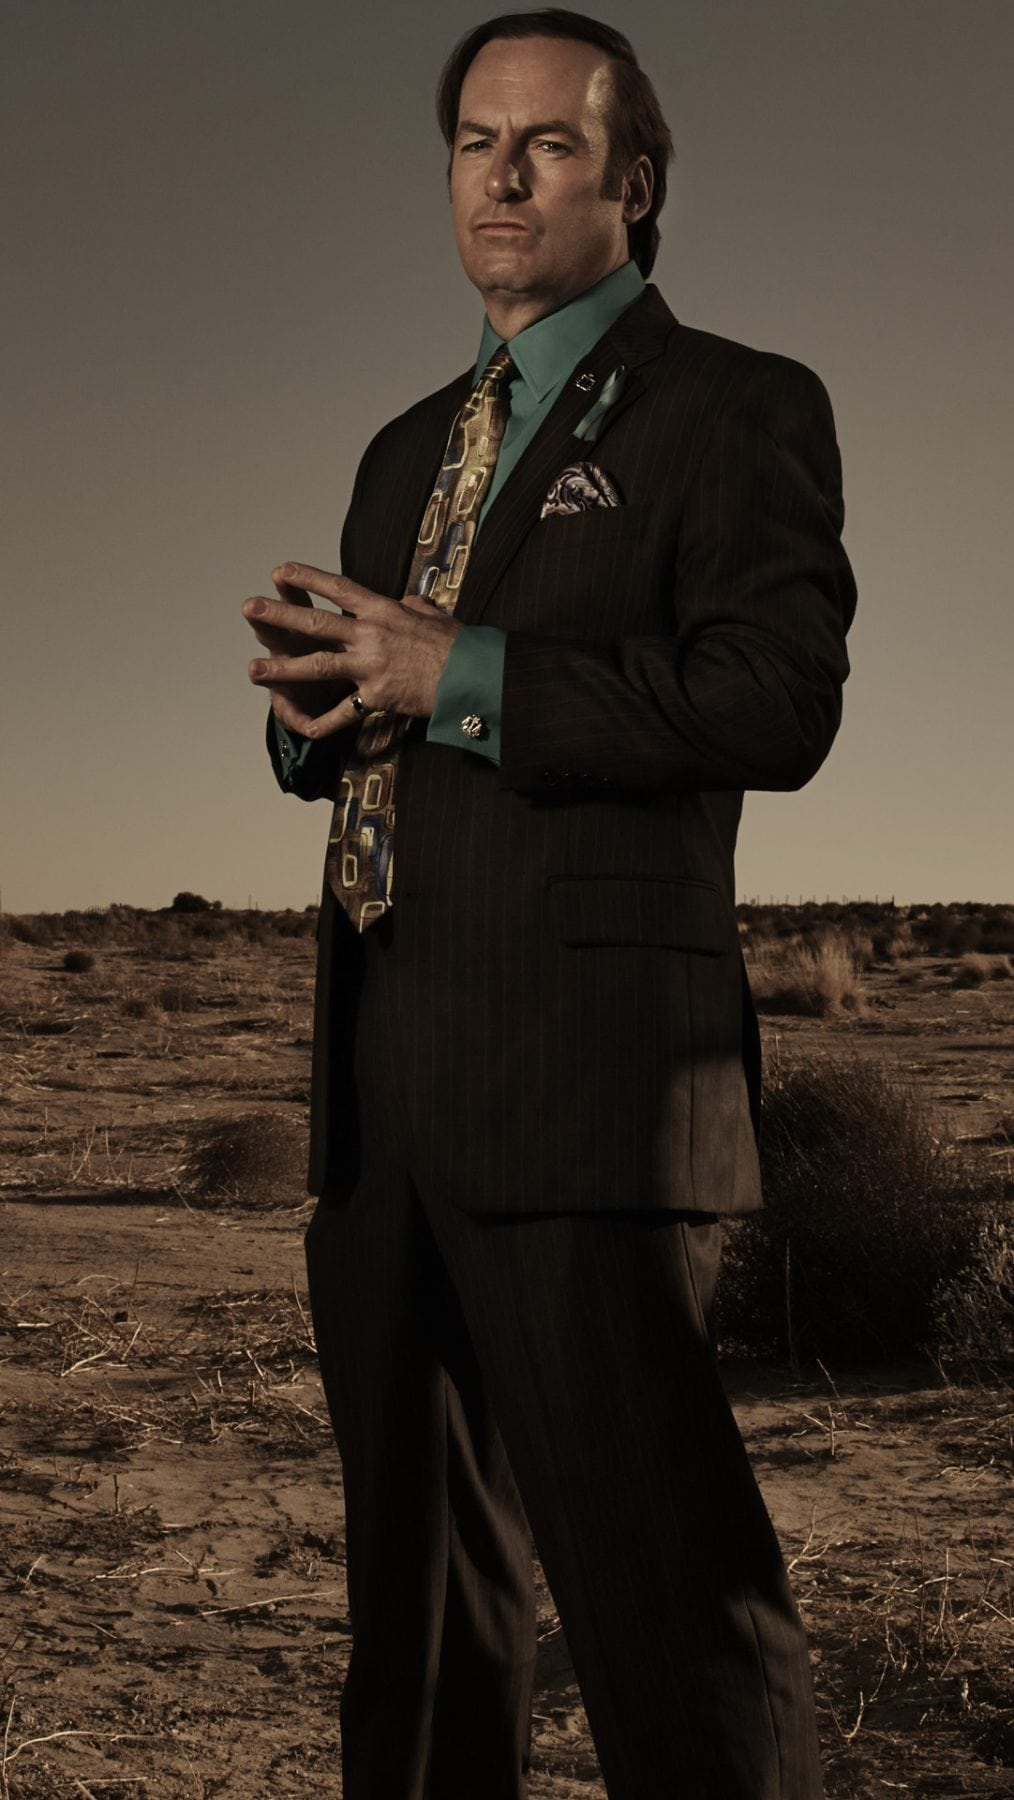 Breaking Bad Iphone Wallpaper Better Call Saul Wallpapers For Iphone And Ipad